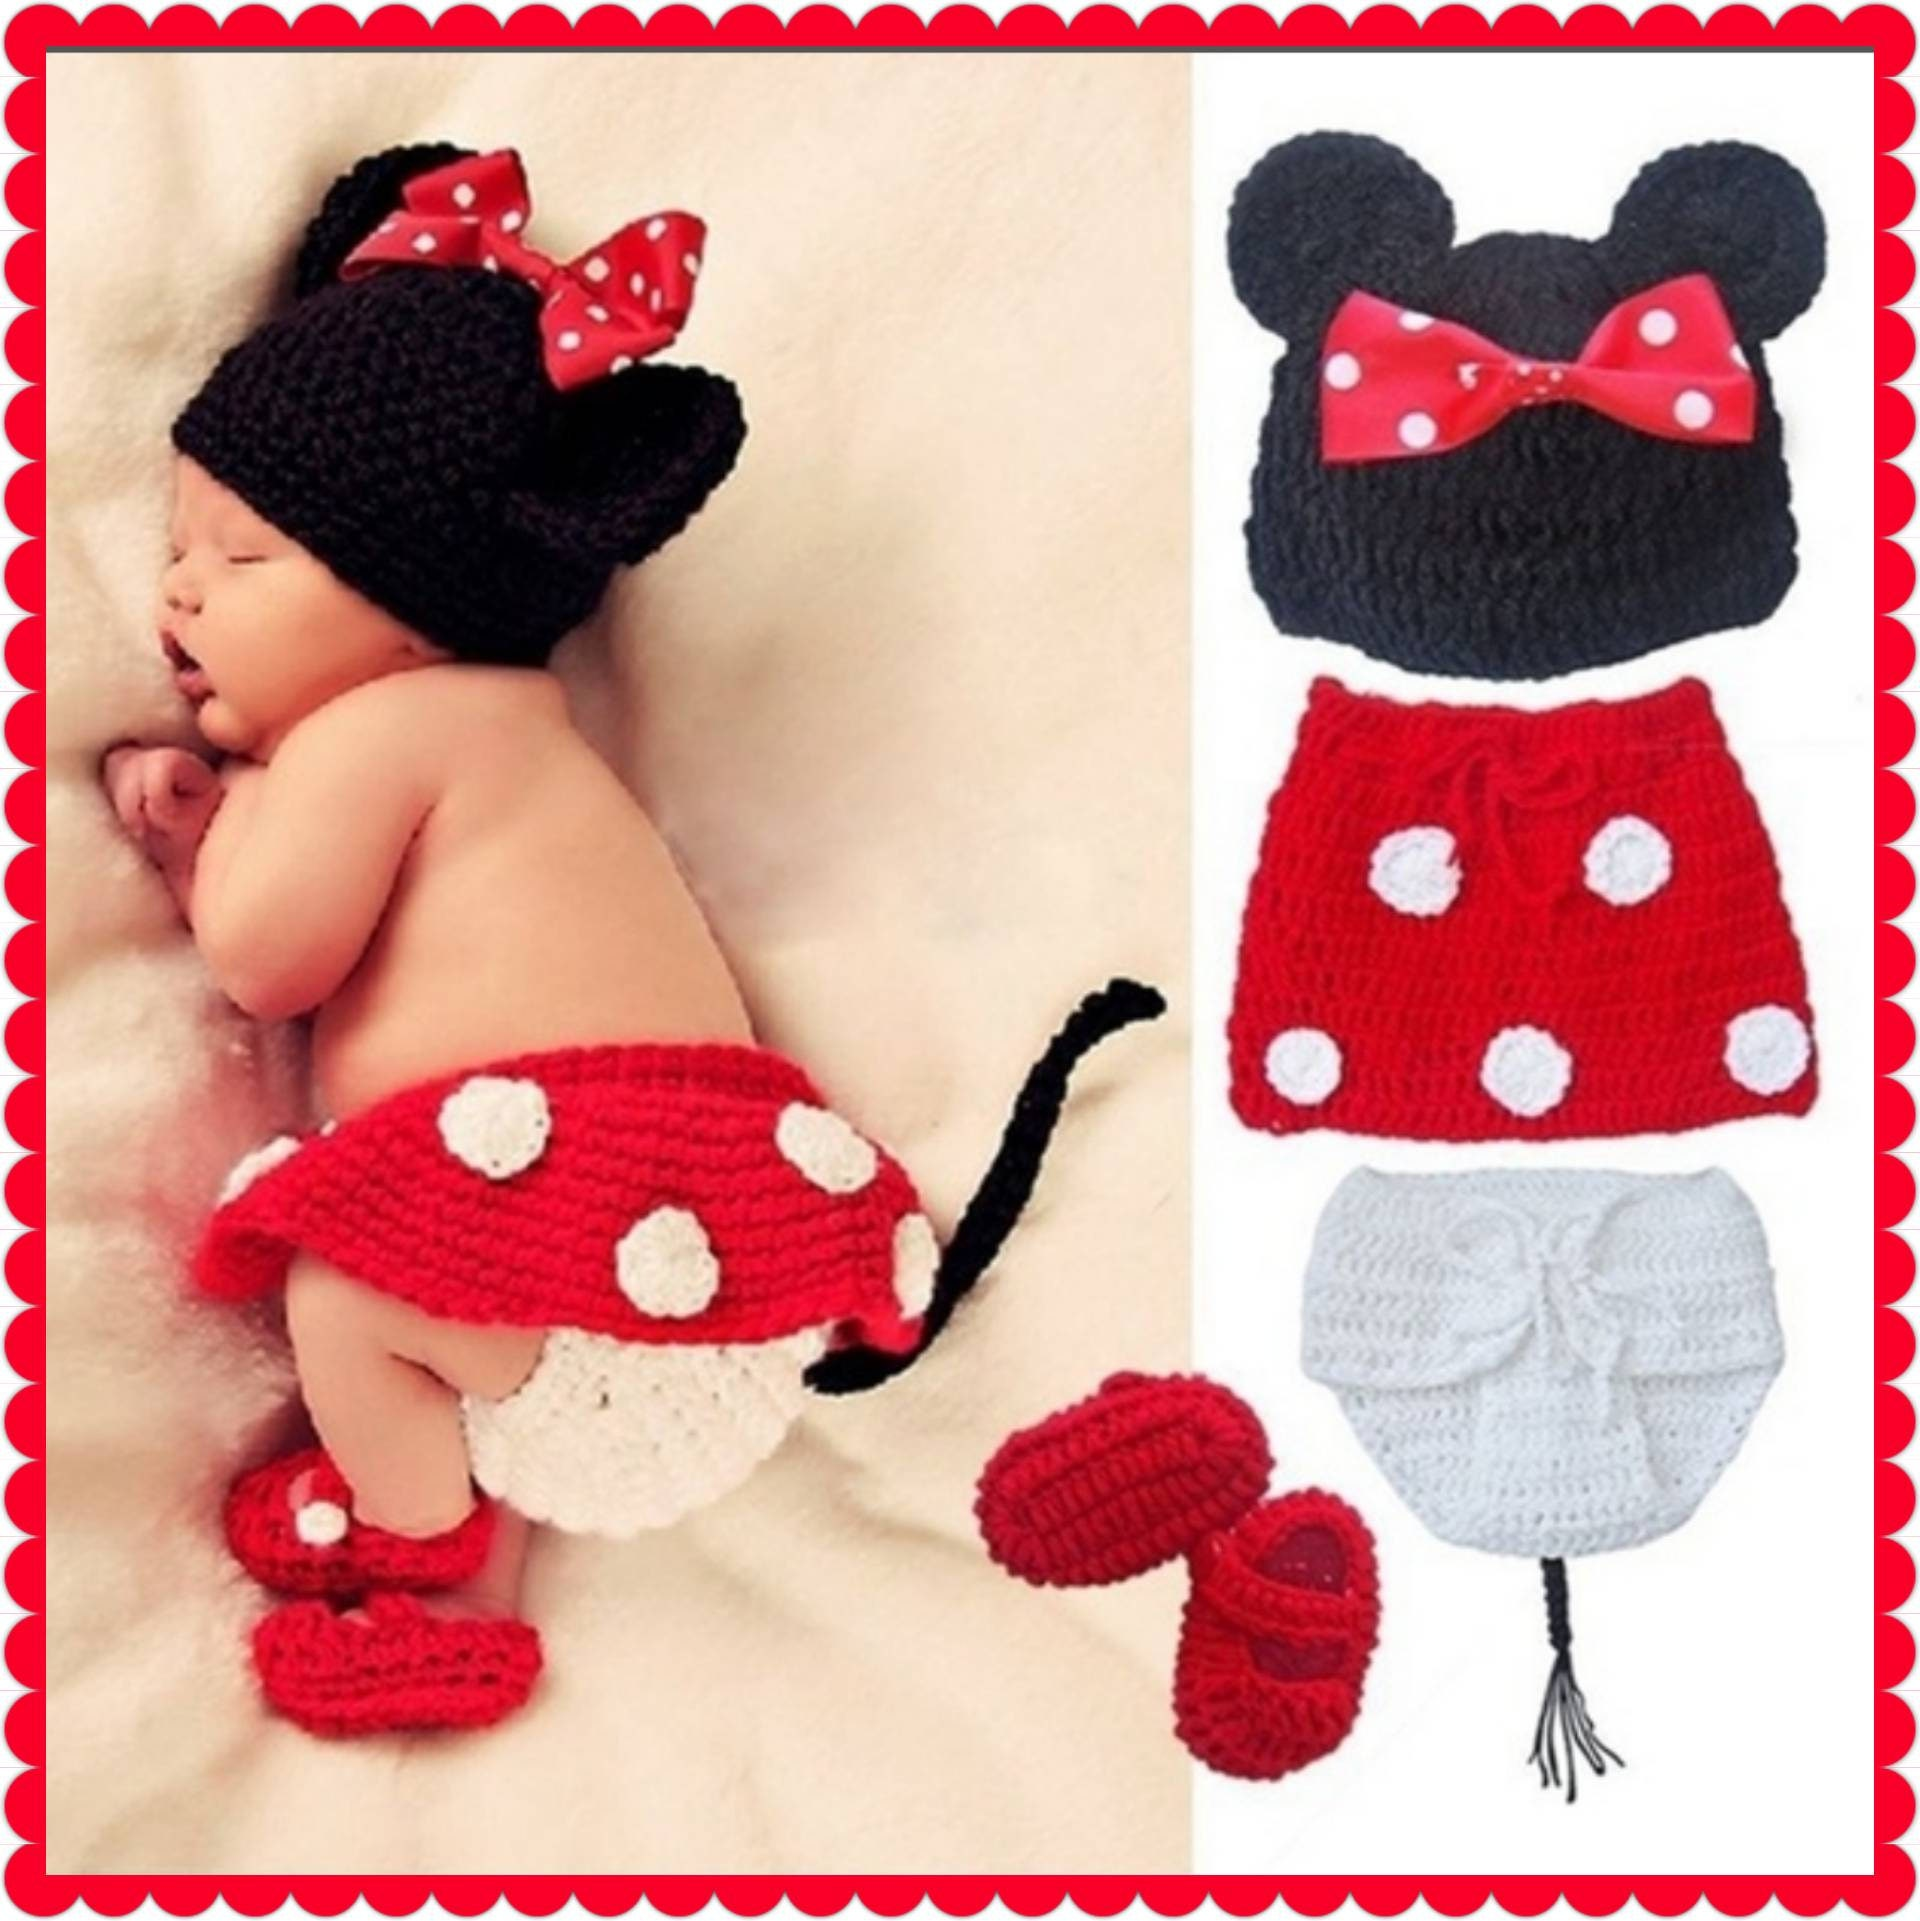 Newborn Minnie Mouse Crocheted Baby Hat With Bow Crocheted Diaper